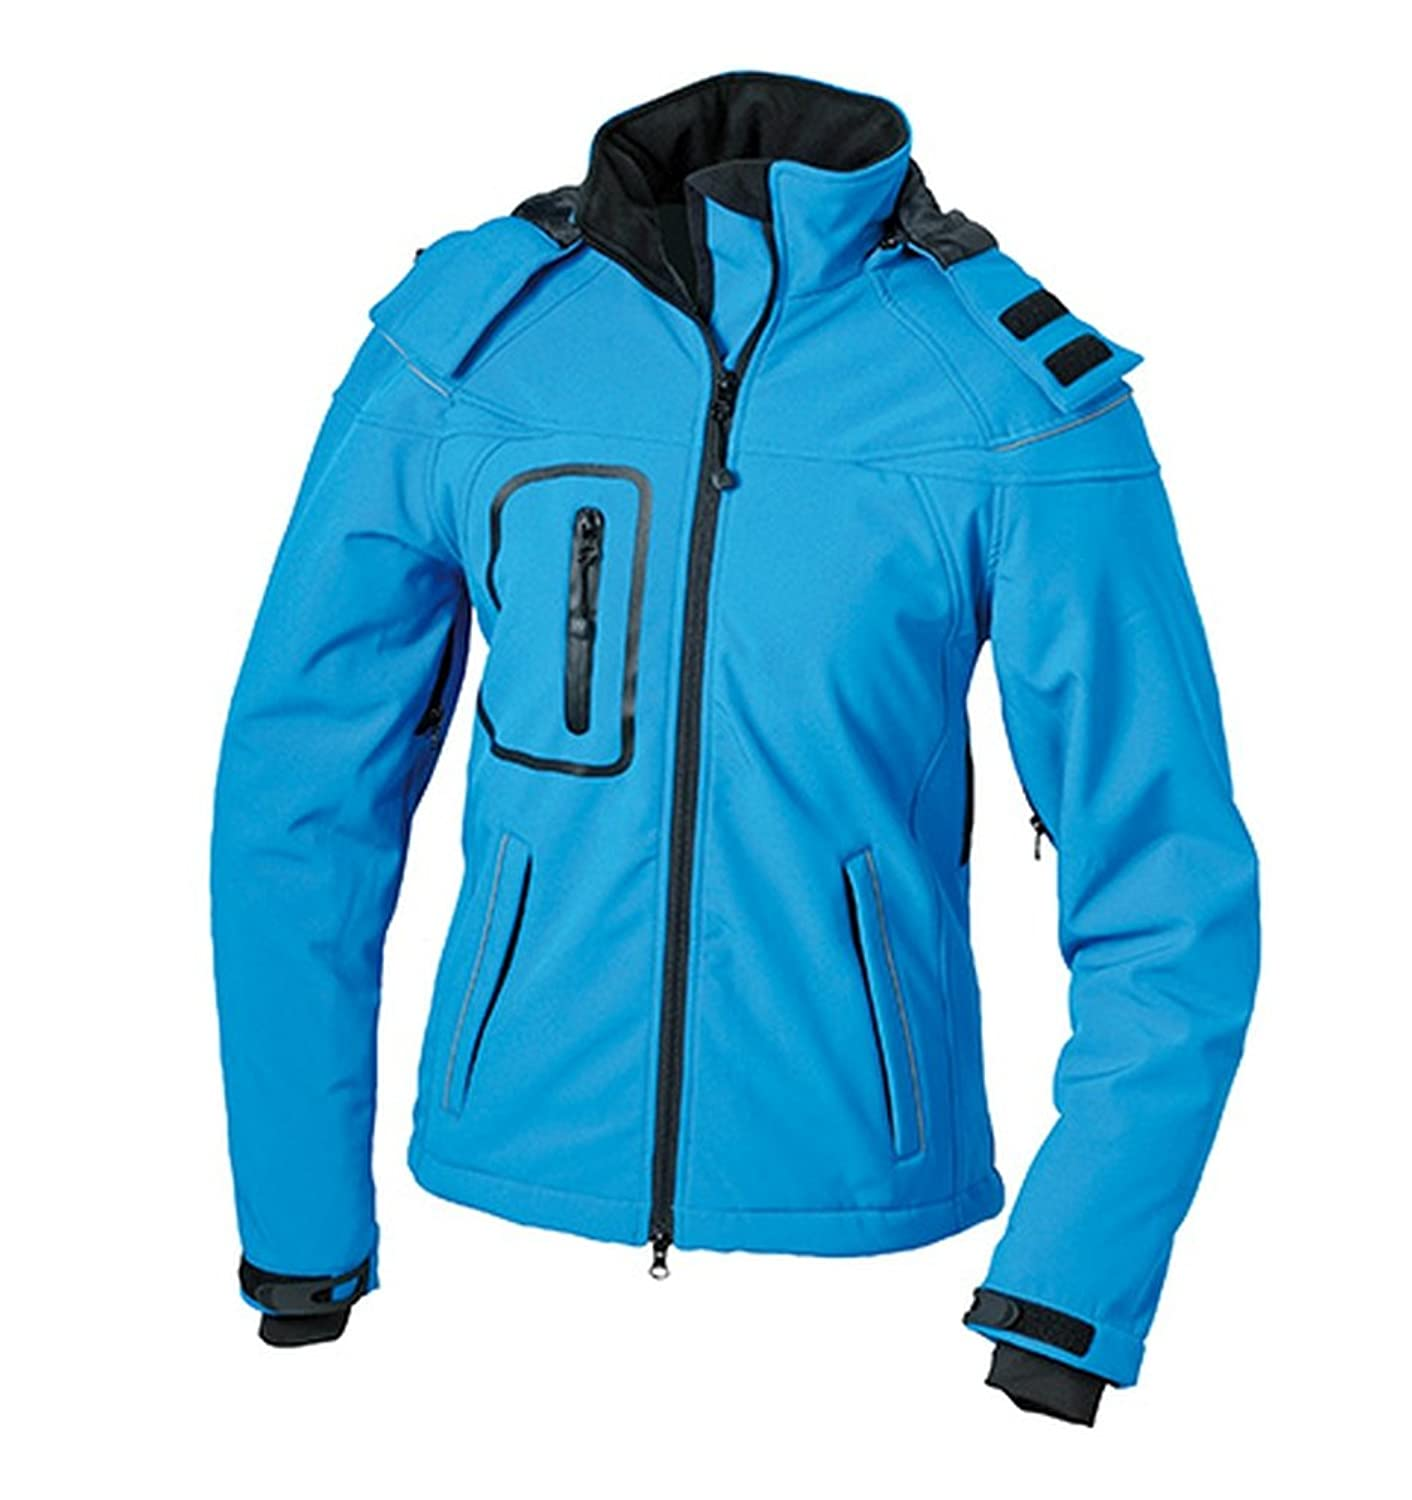 Ladies' Winter Softshell Jacket günstig online kaufen